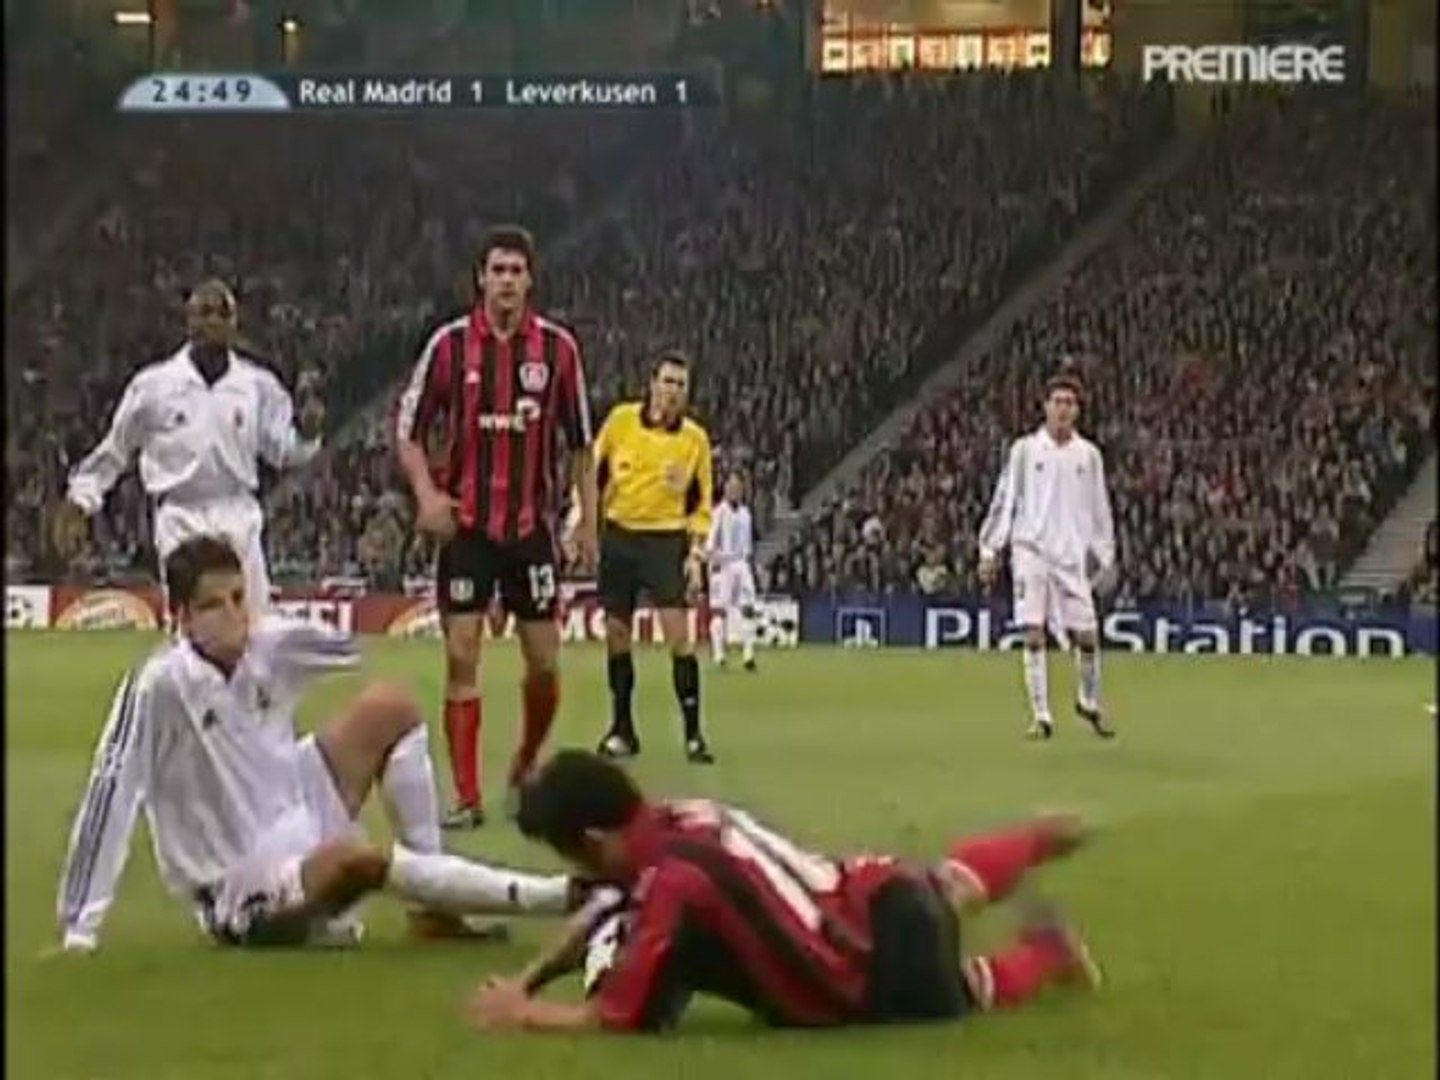 2002 Bayer 04 Leverkusen Real Madrid Cf 1st Half Video Dailymotion